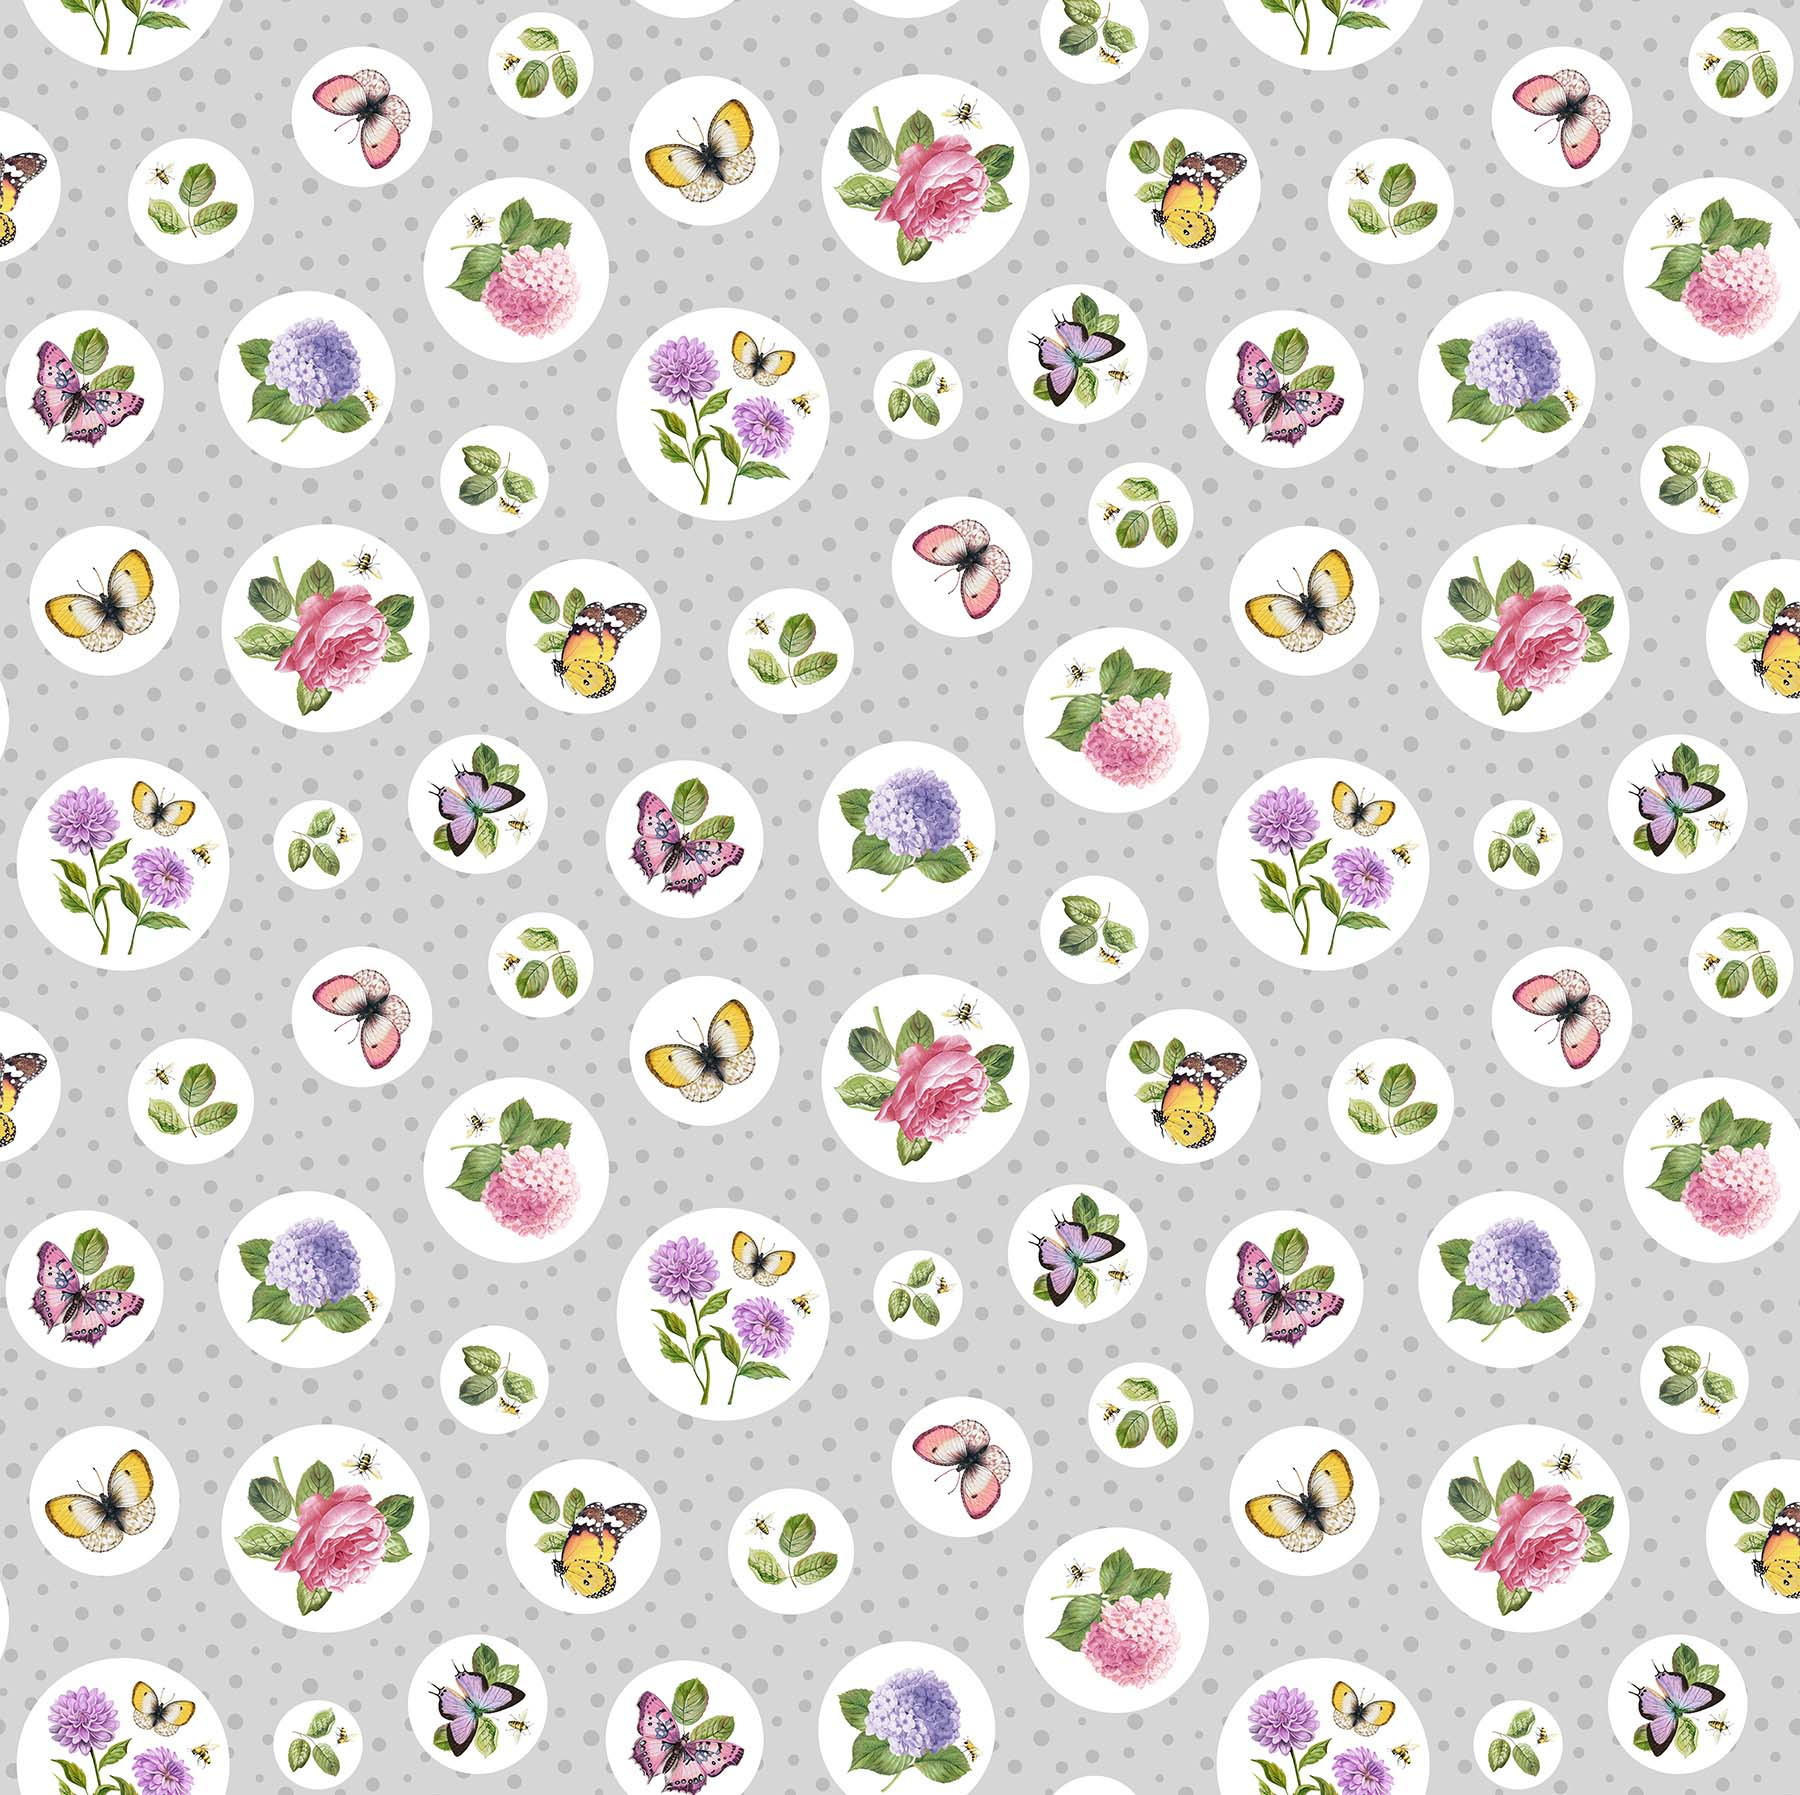 SCENTED GARDEN Gry Floral Polka